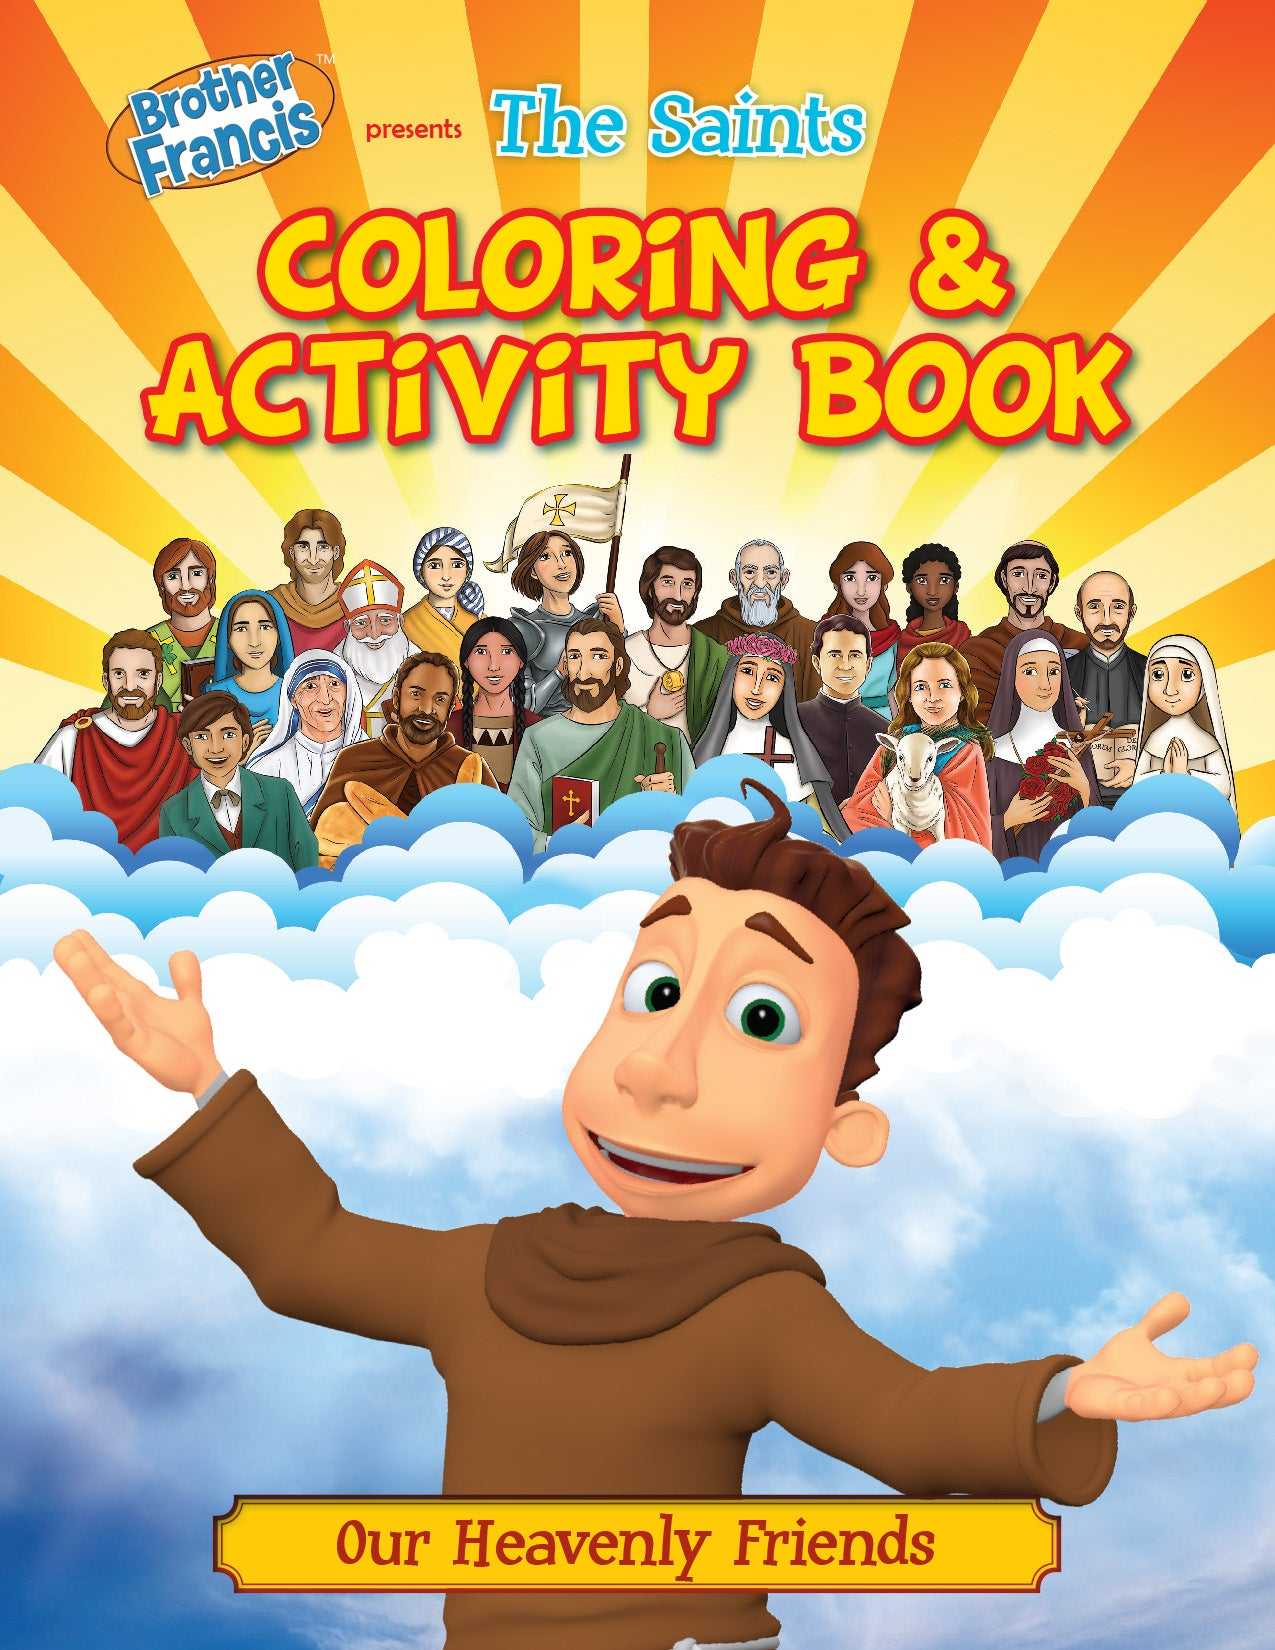 Brother Francis Coloring and Activity Book - The Saints